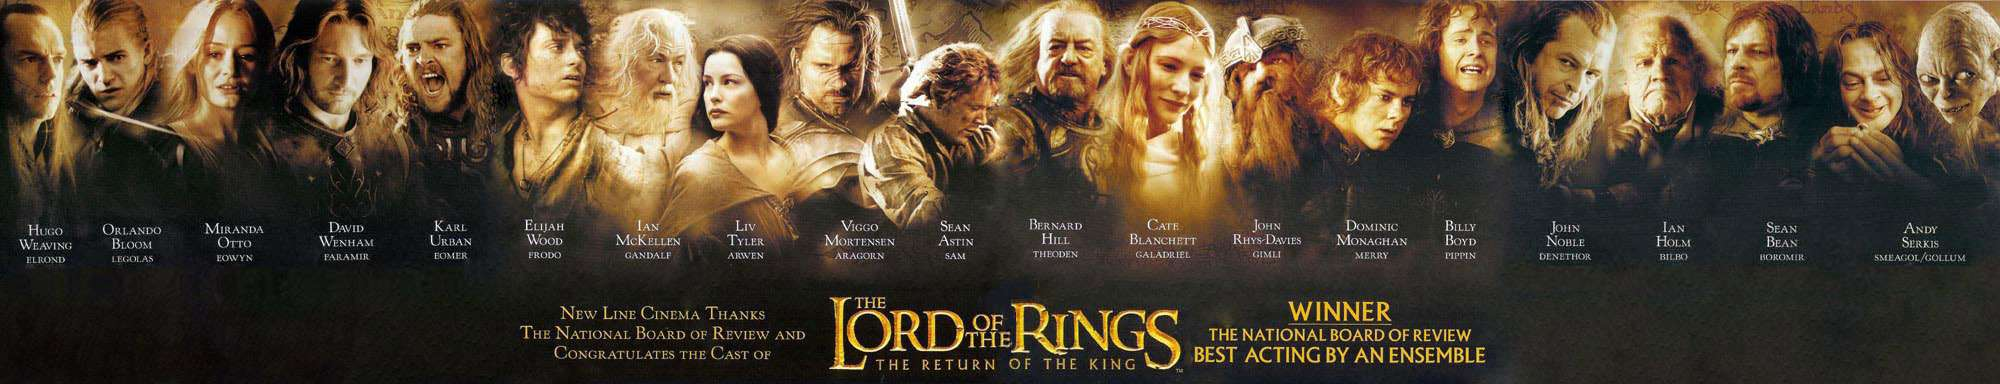 Lord Of The Rings Whole Soundtrack